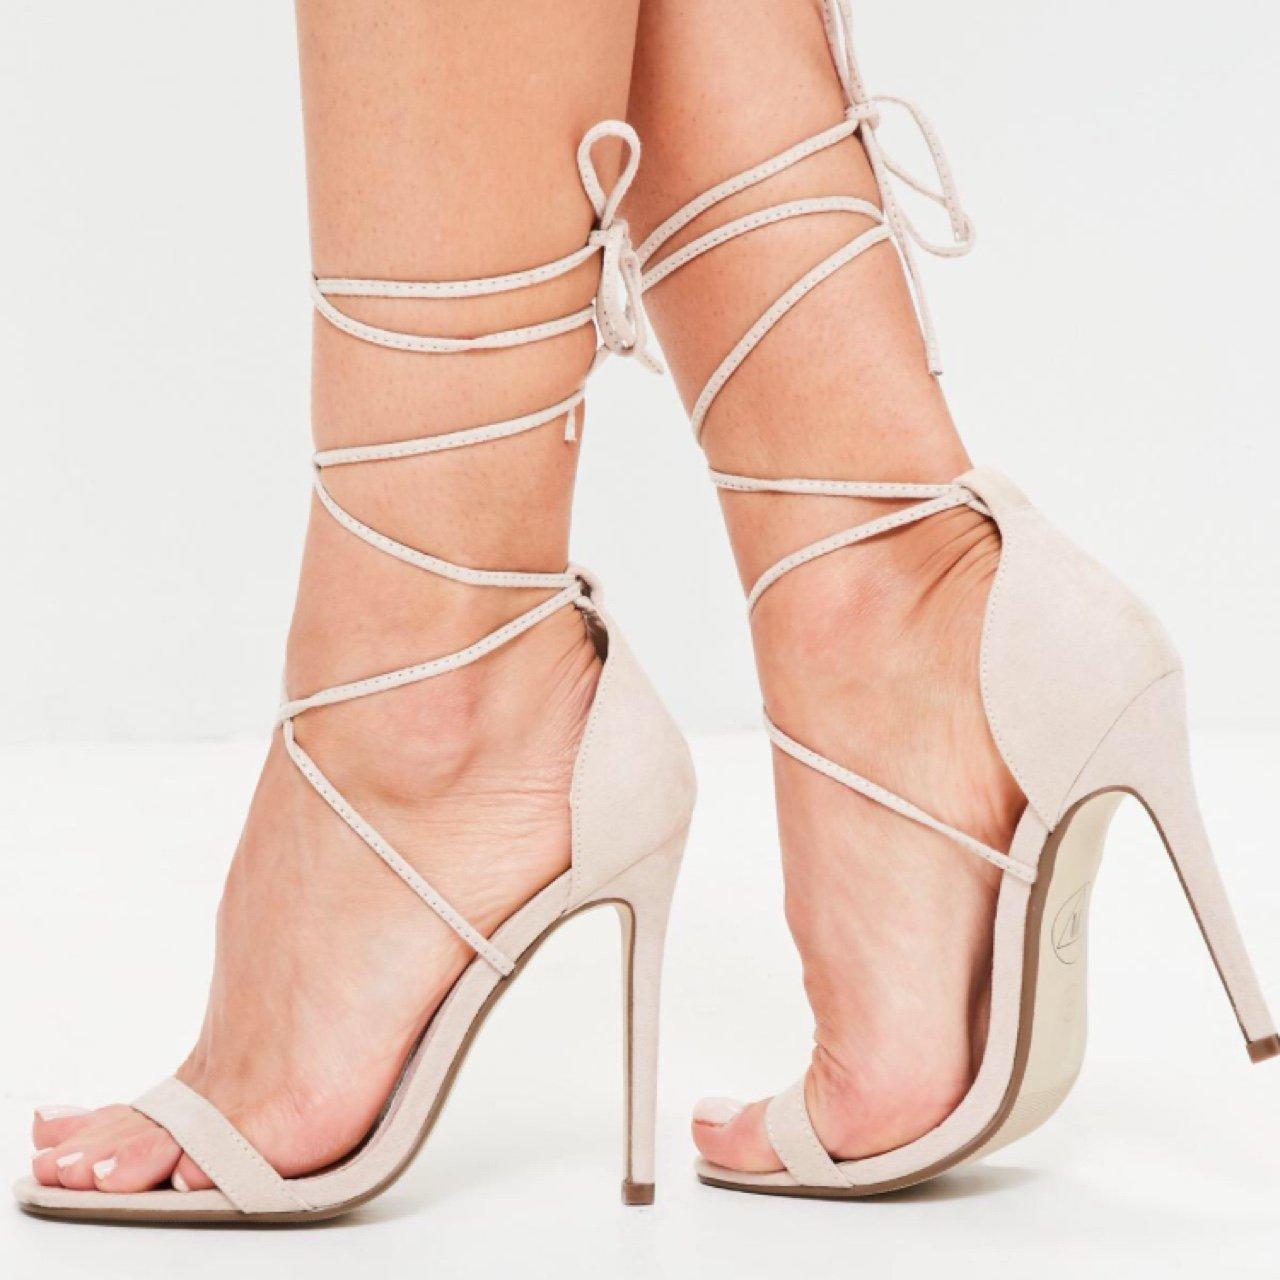 c8de0d8c1d Missguided lace up barely there nude heels. Size 6 and with - Depop